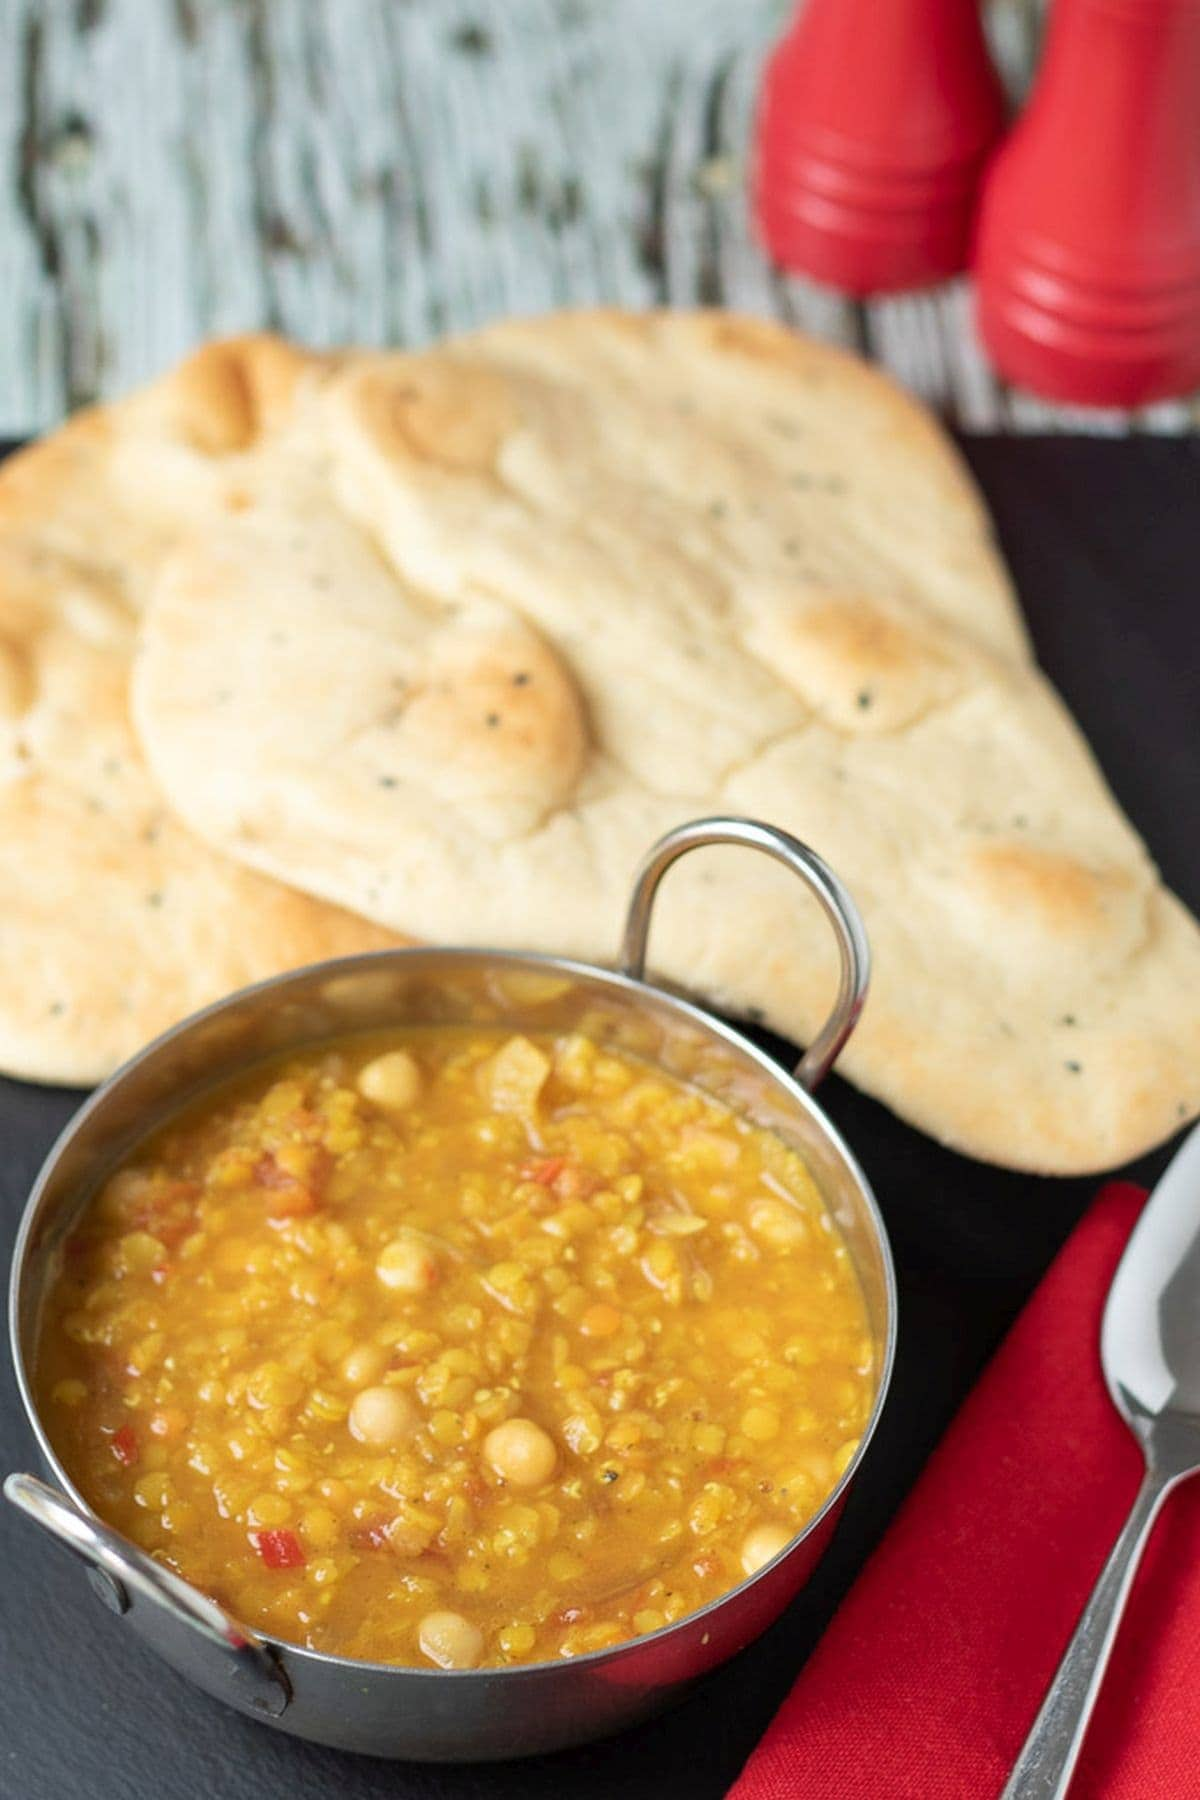 Balti dish filled with one pot chickpea and red lentil dahl with 2 naan breads in the background.